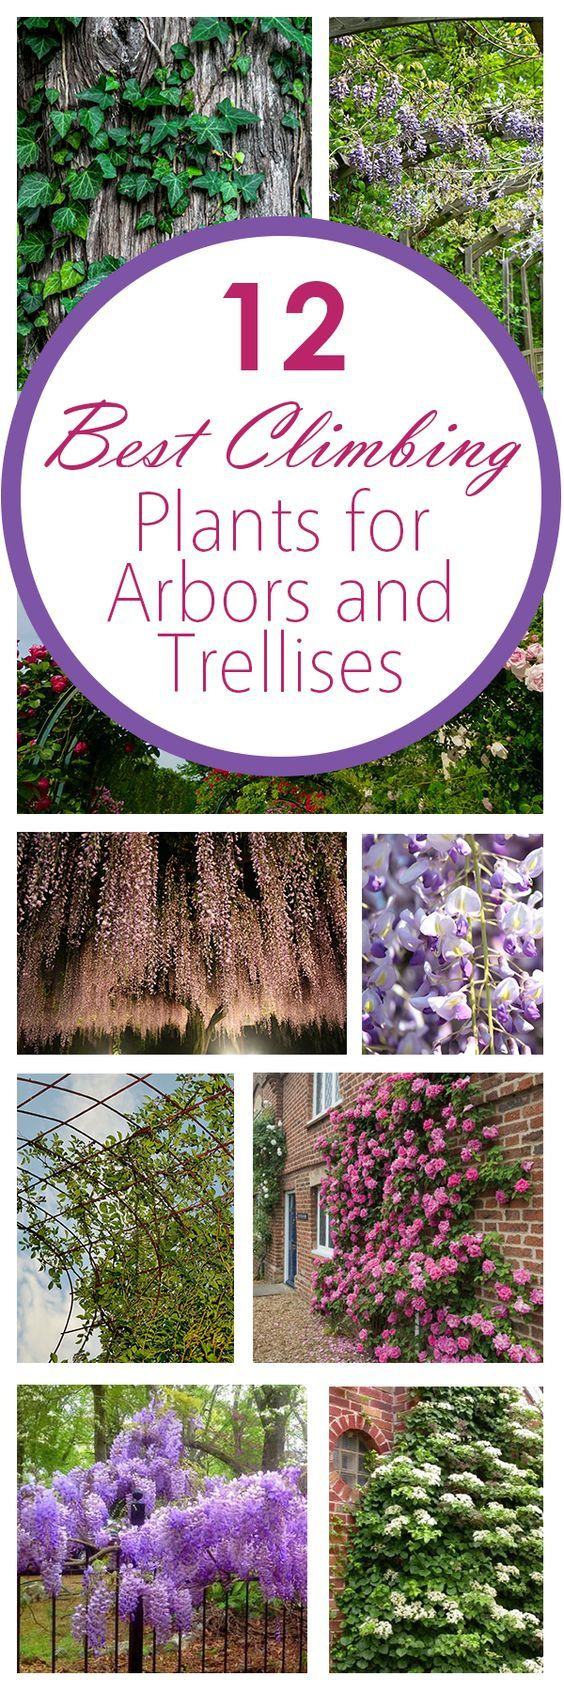 12 Best Climbing Plants for Arbors and Trellises. Gorgeous Garden Ideas!